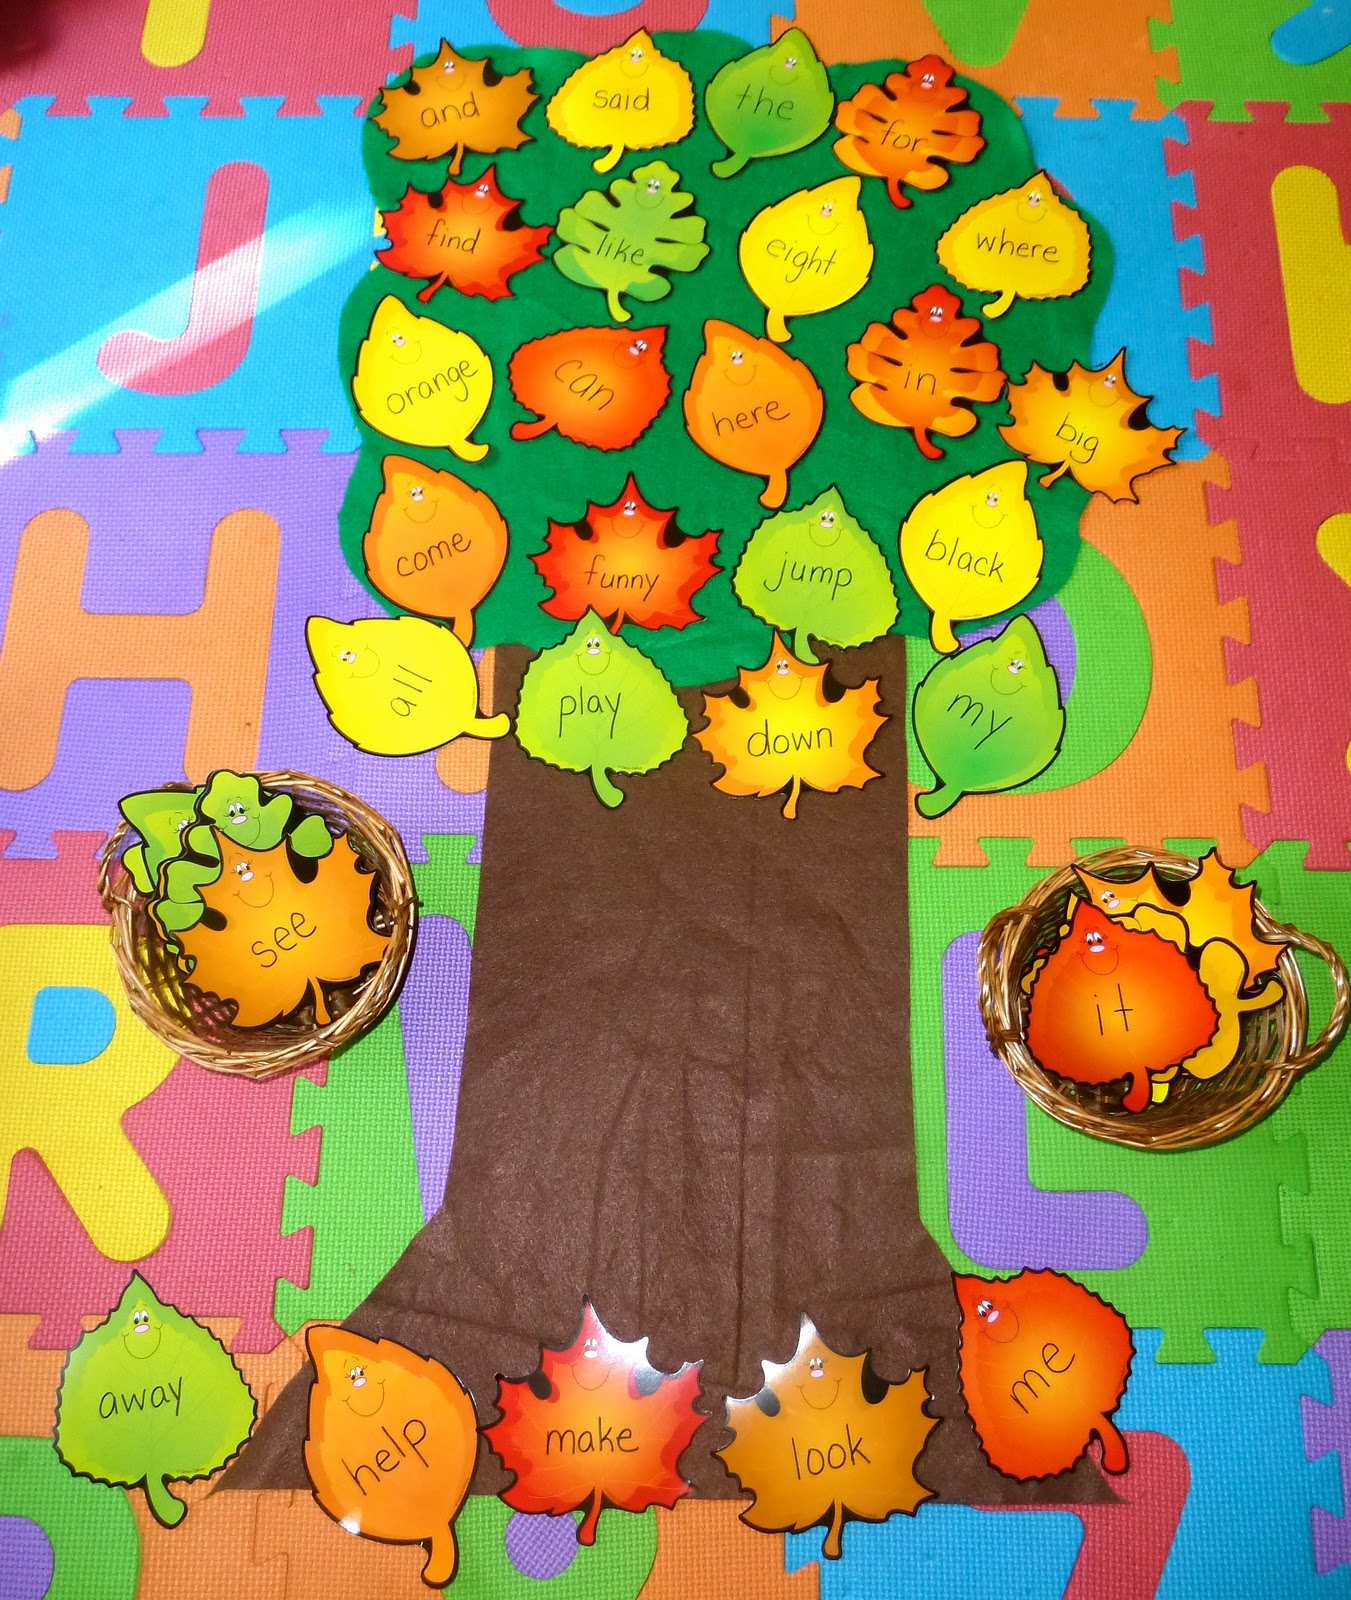 1 I Turned The Leaves Upside Down And The Lil Divas Had To Turn Over A Leaf And Try To Read The